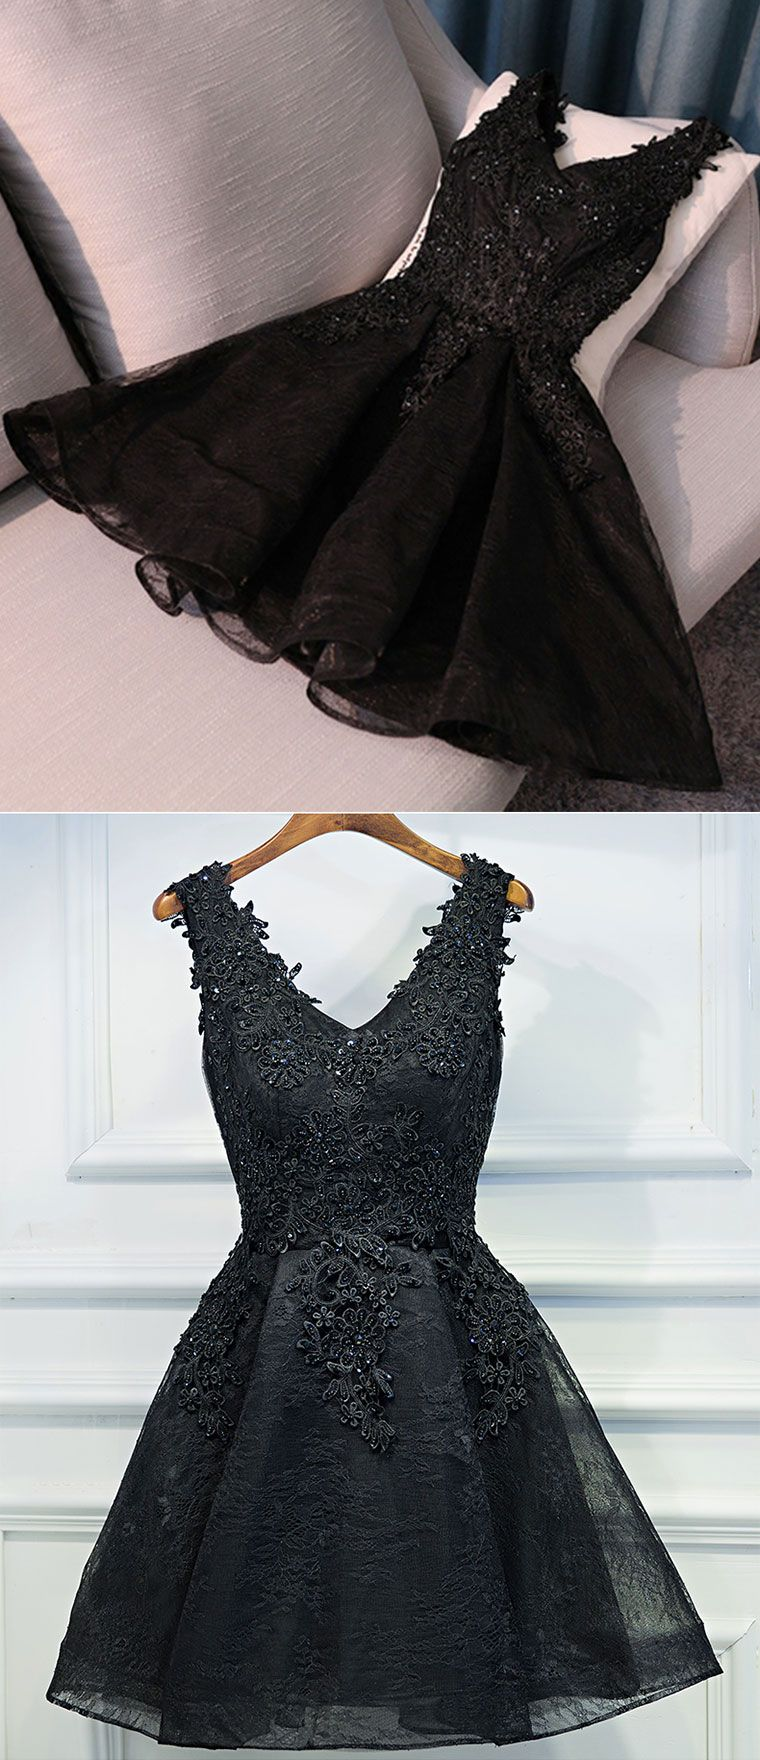 Black v neck lace short prom dress lace evening dress from of girl